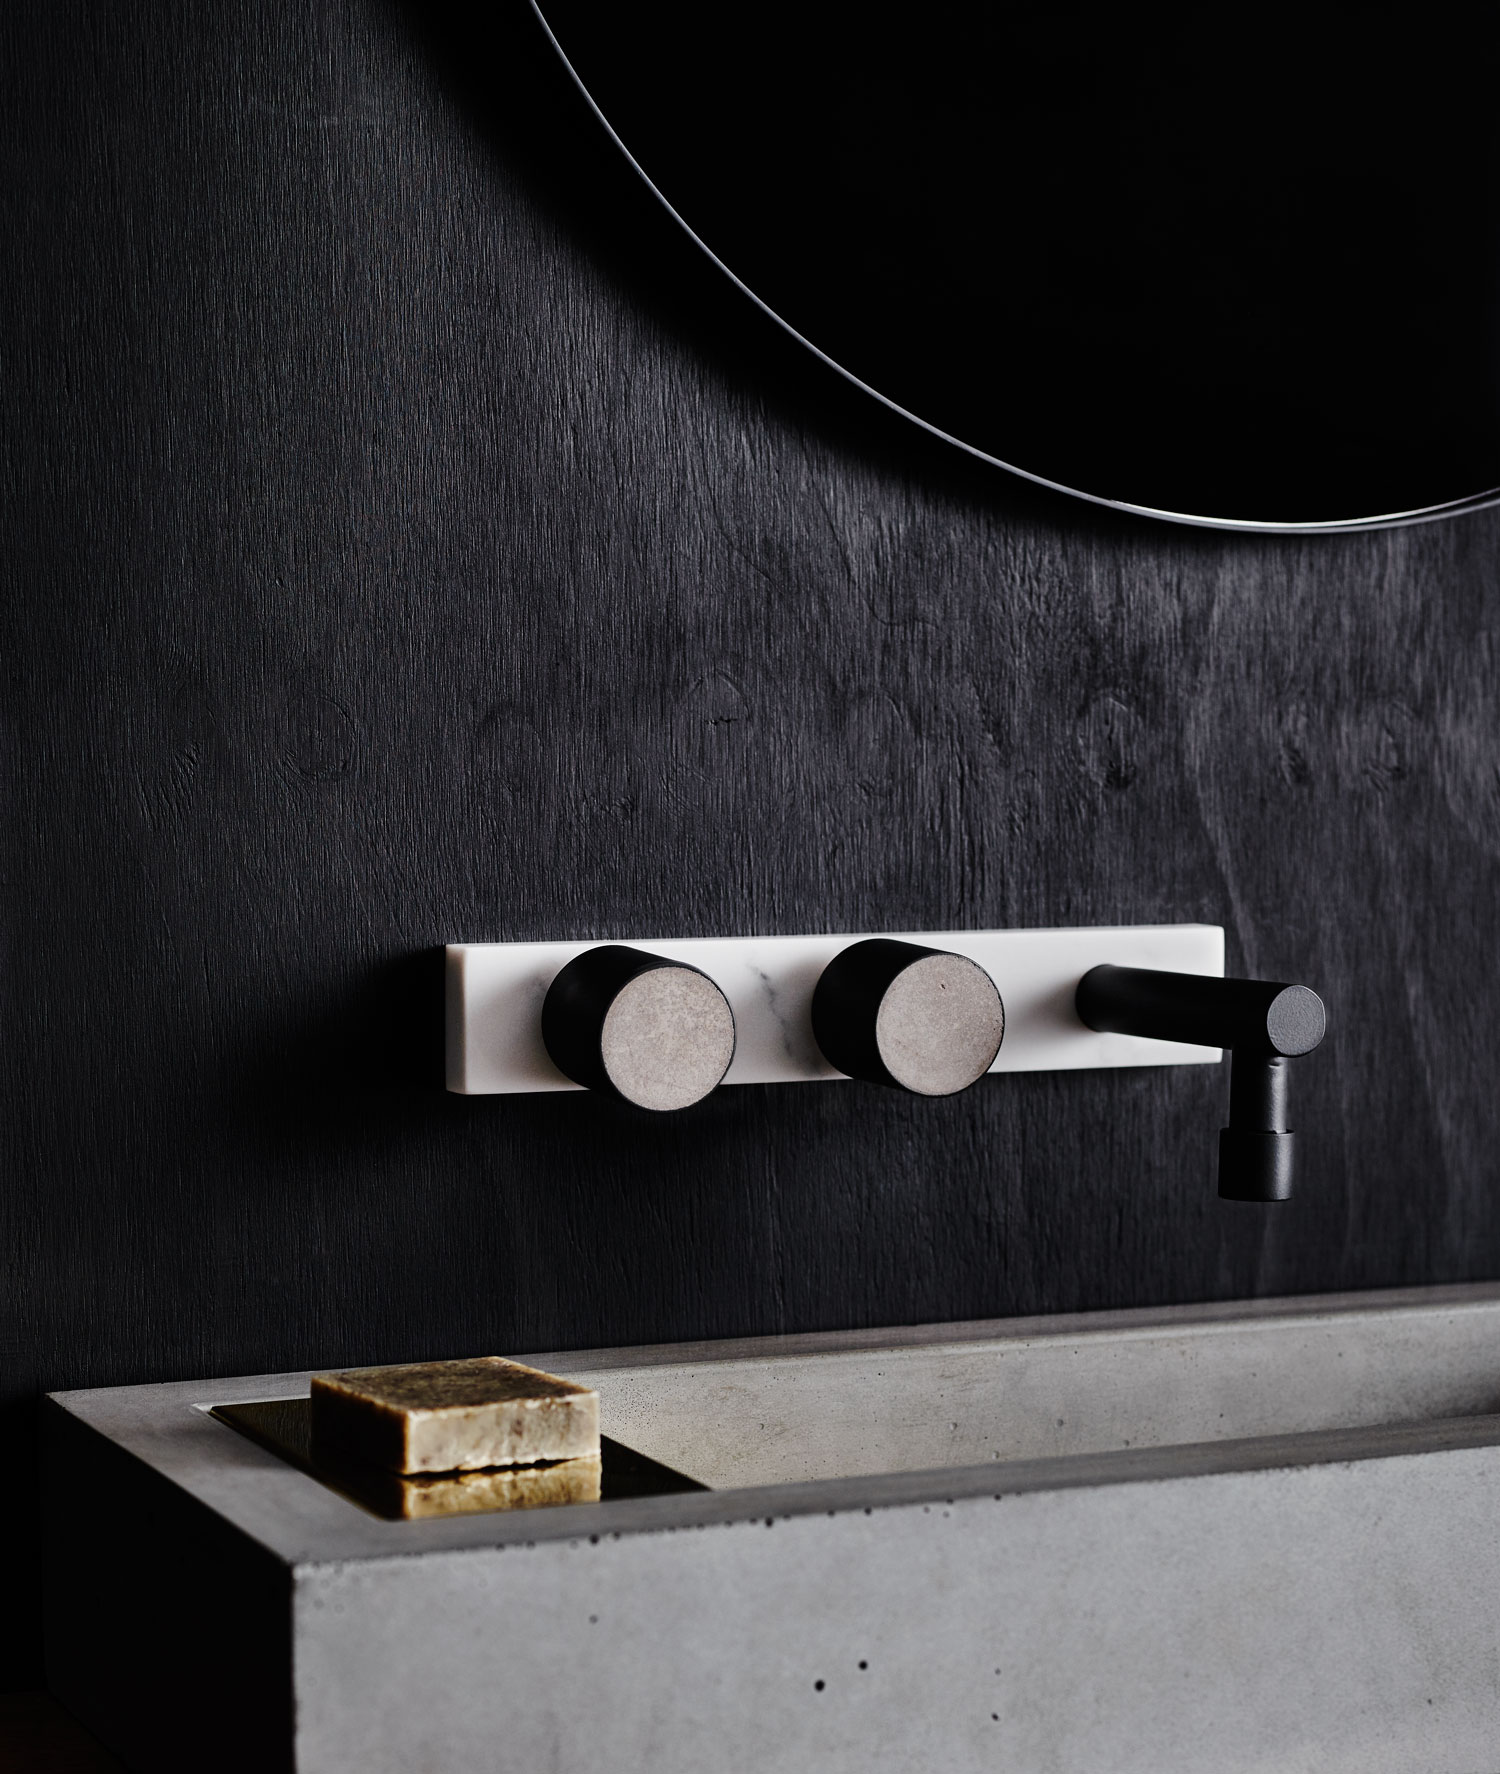 wood melbourne has launched their latest collection of inspired tapware basins and bathroom accessories maker and designer oliver maclatchy founded wood - Bathroom Accessories Melbourne